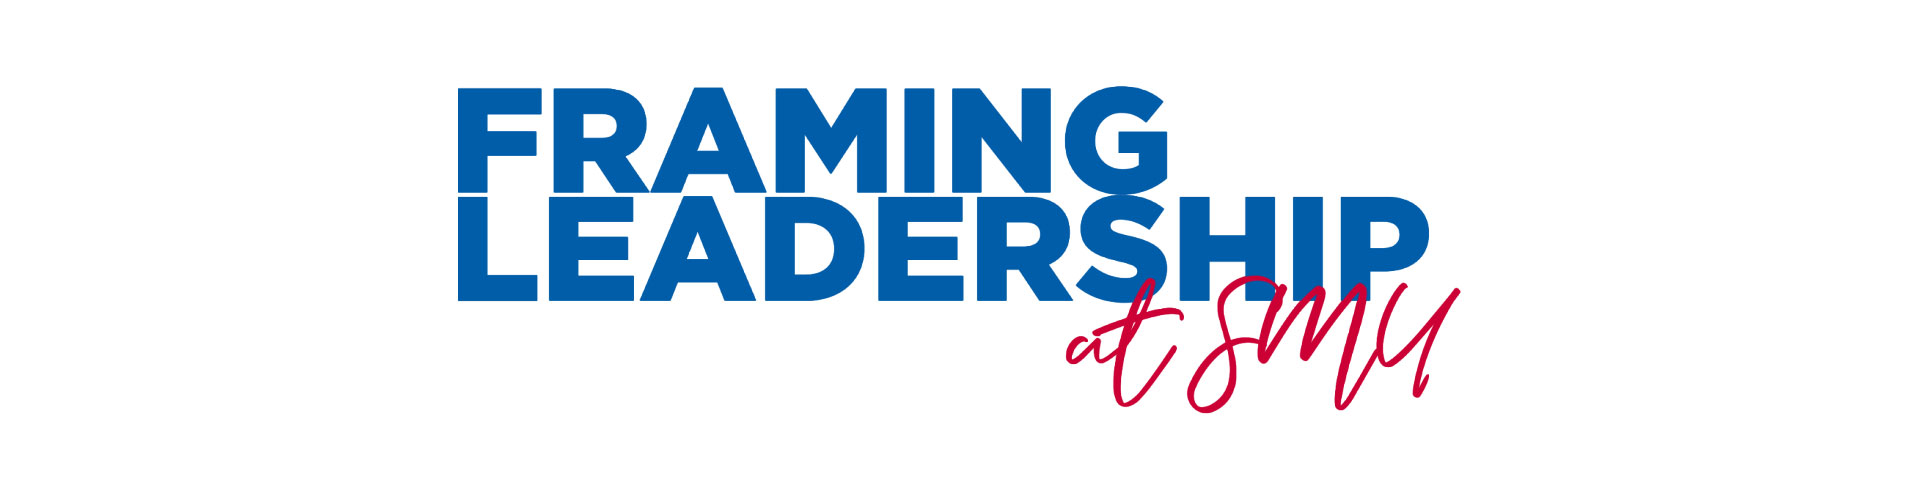 Framing Leadership at SMU logo